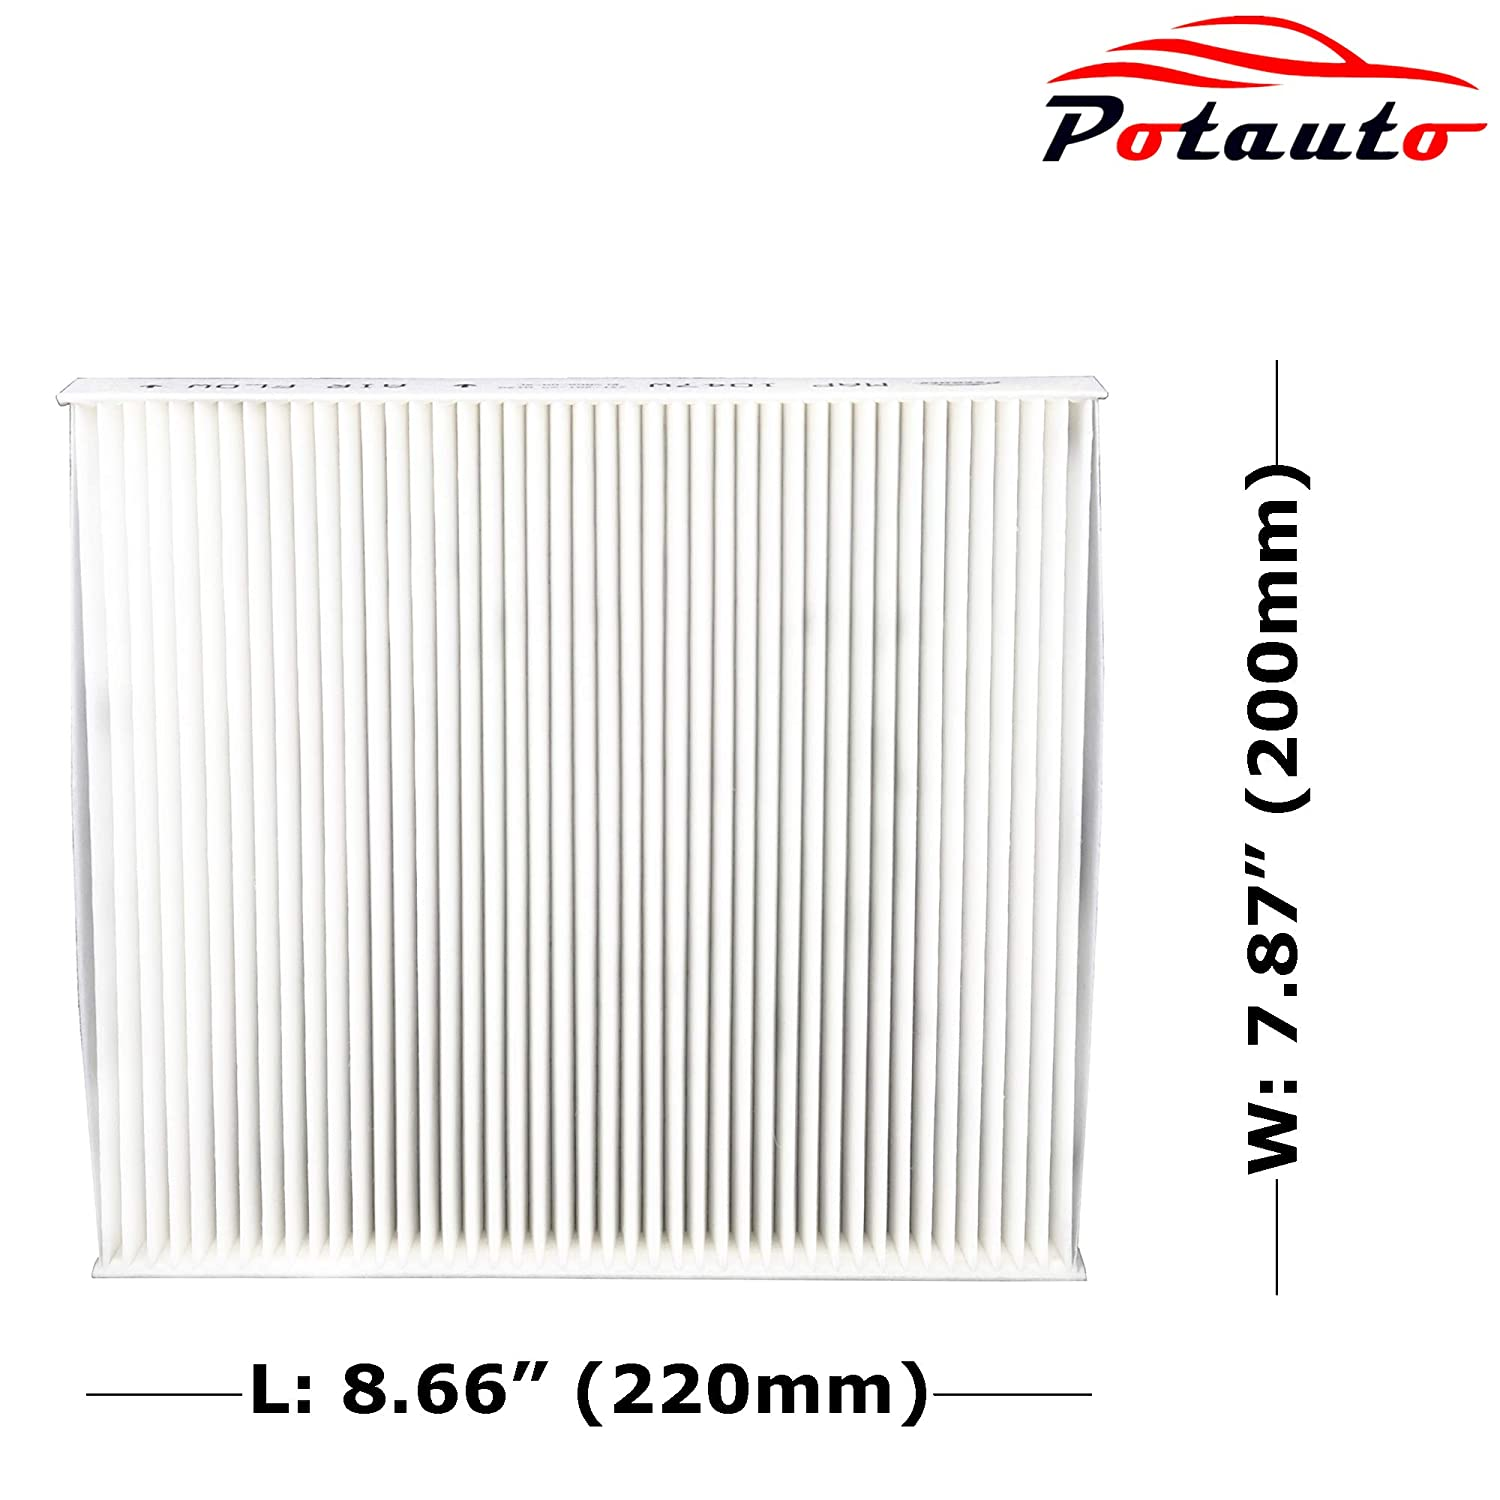 INSIGHT RC TURBO GS F GS TURBO RC350 IS200T CF8249A RC200T IS300 IS TURBO CR-V GS200T POTAUTO MAP 1047C RC F Replacement Activated Carbon Car Cabin Air Filter for HONDA GS450H IS350 RC300 GS350 LEXUS